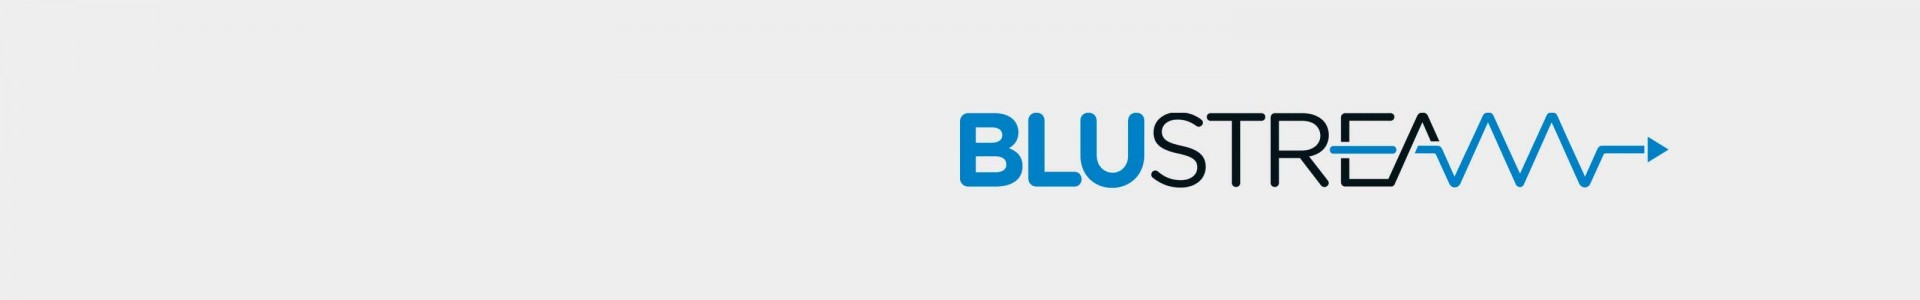 Blustream HDMI extenders at Avacab - Discounts for installers